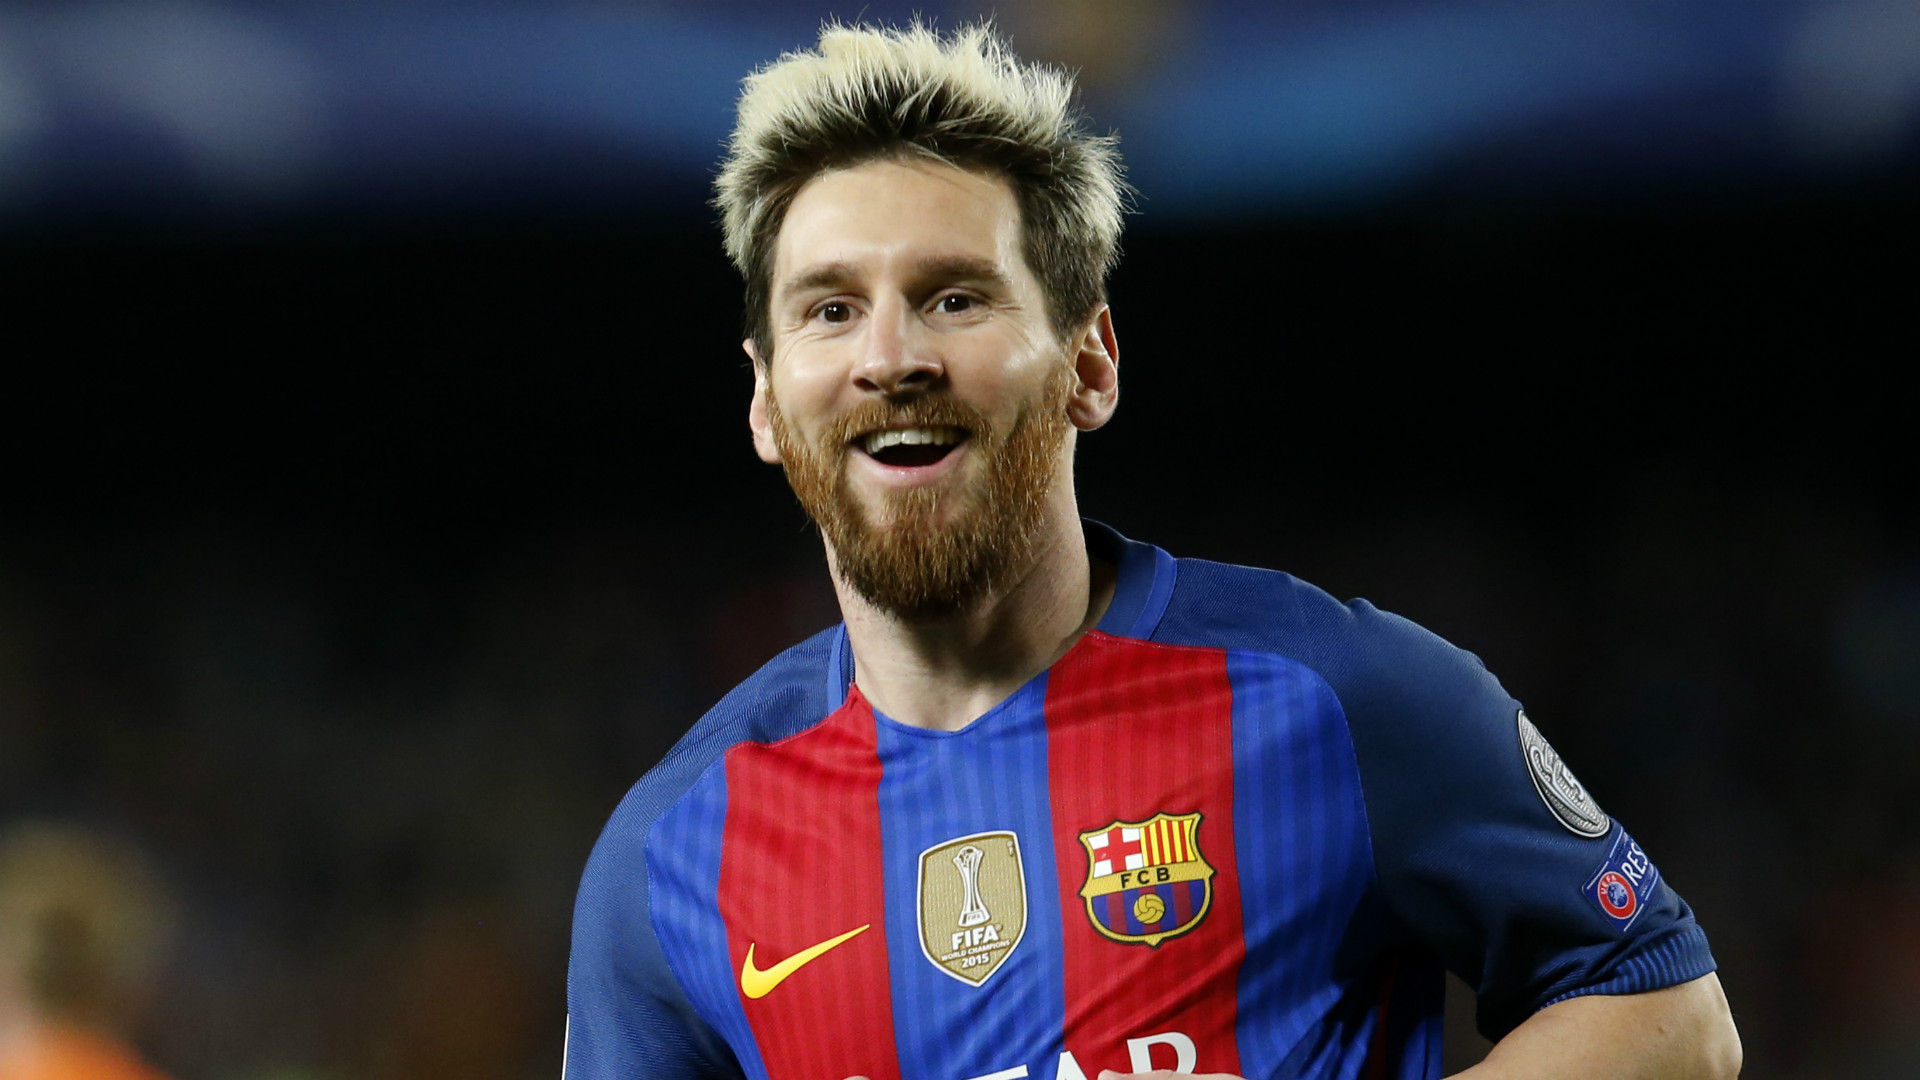 Leo Messi Leo Messi Wallpaper 2016 Pictures To Pin On Pinterest